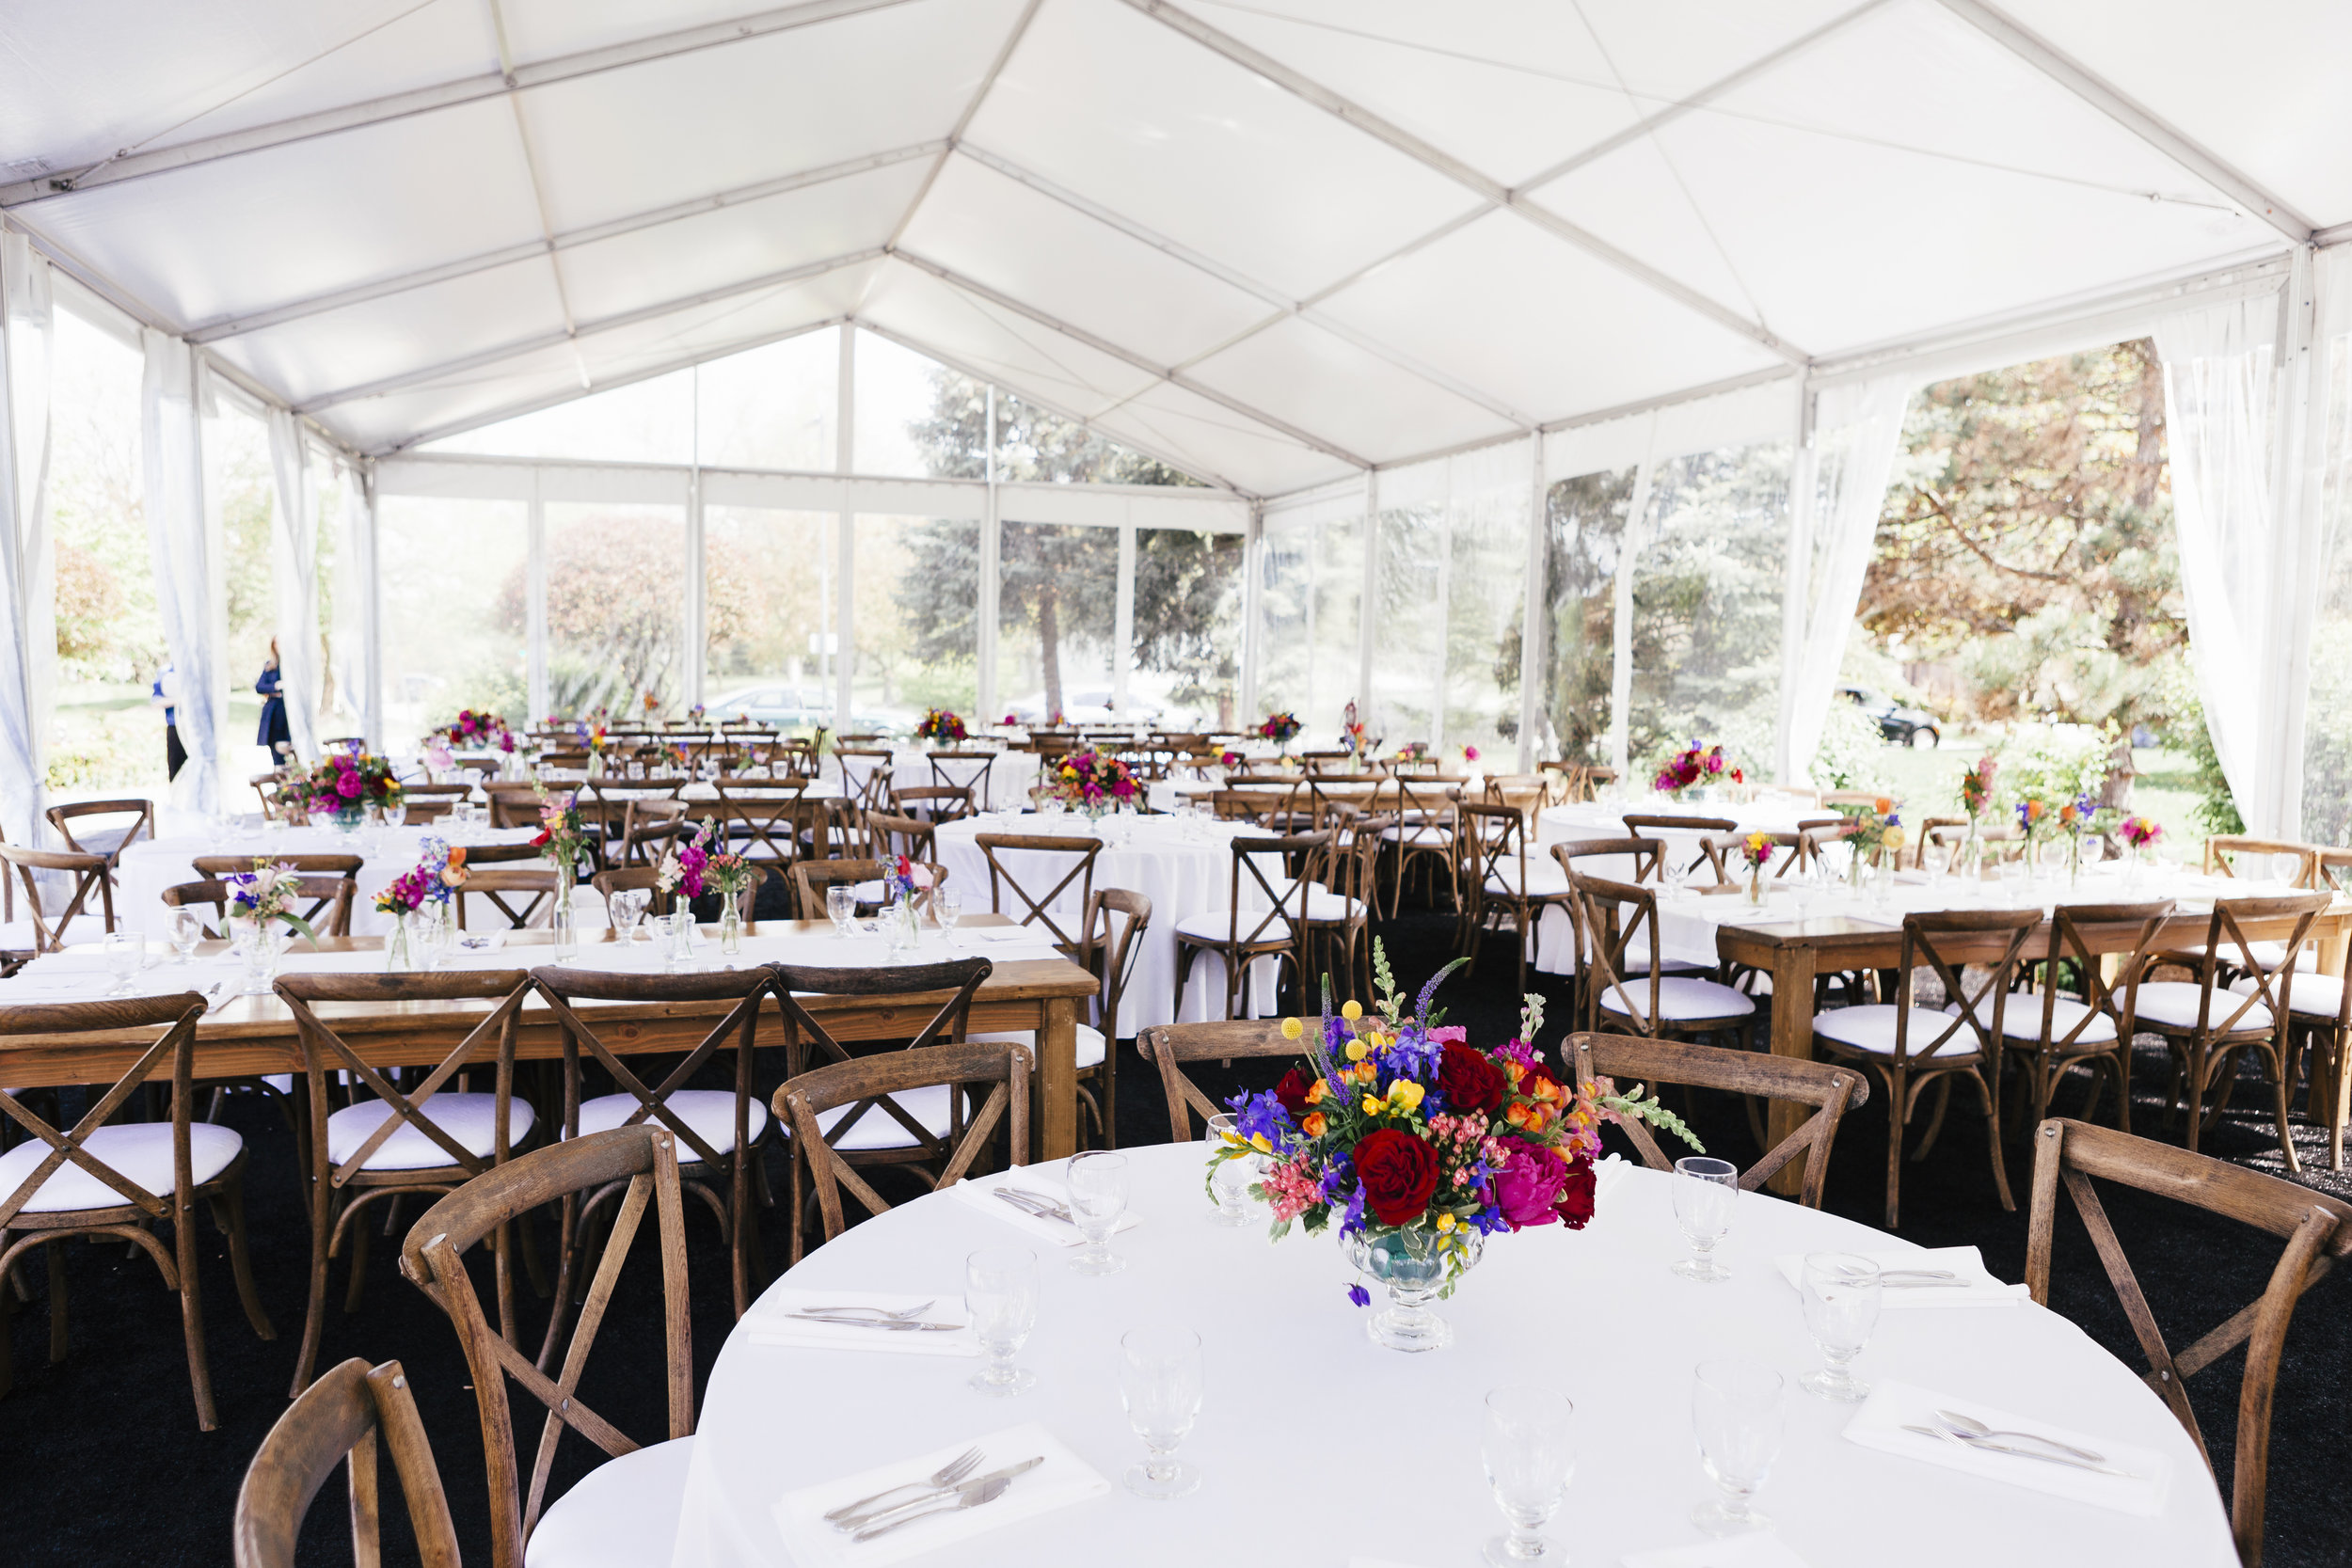 Private Residence Wedding  Colorful Floral Decor  Planning by Wrap It Up Parties